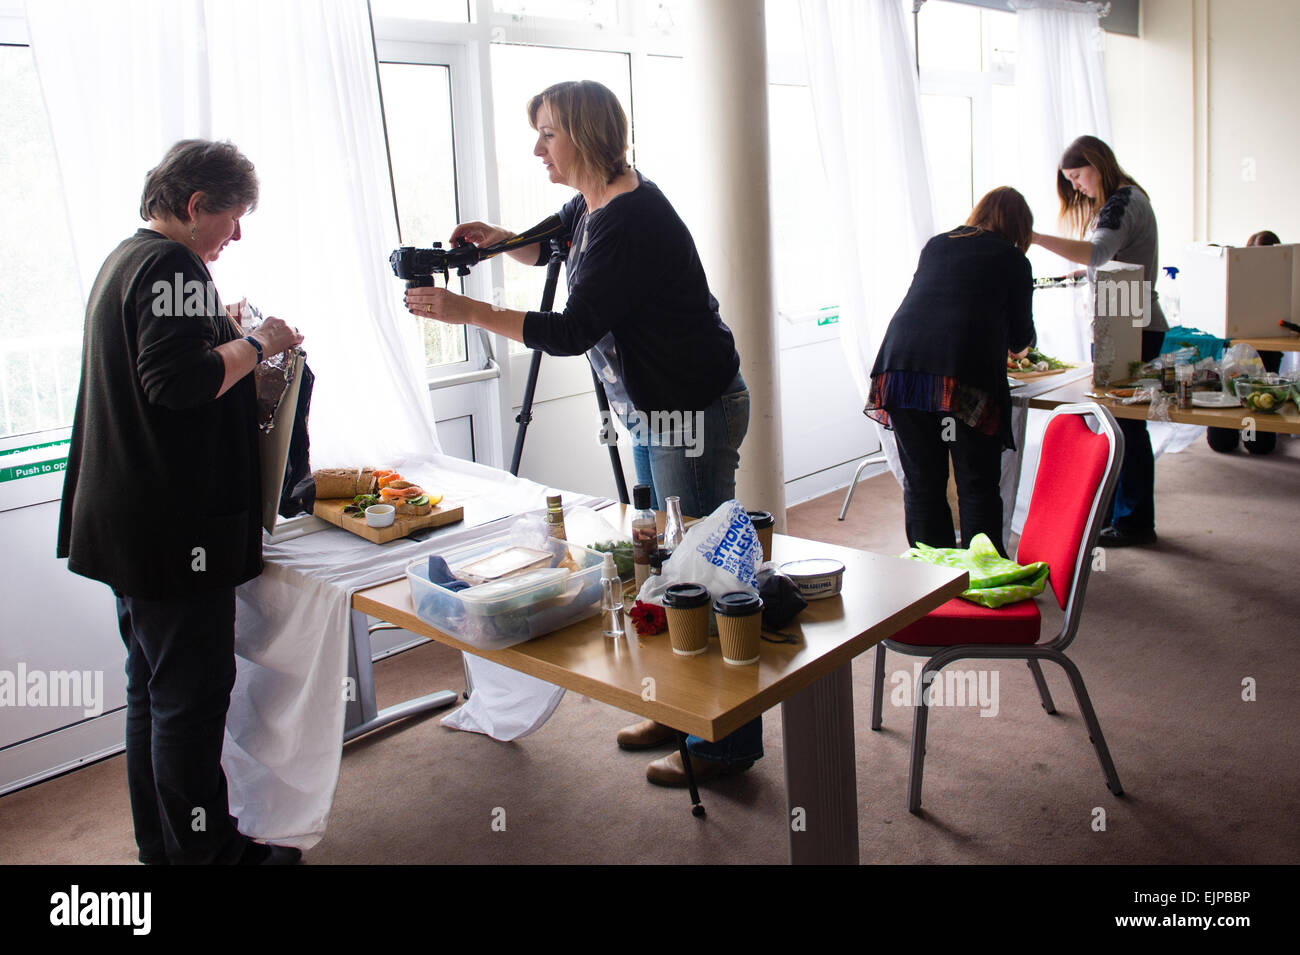 Adult education: Four adult women  setting up their DSLR digital cameras and other props and items in a food photography - Stock Image